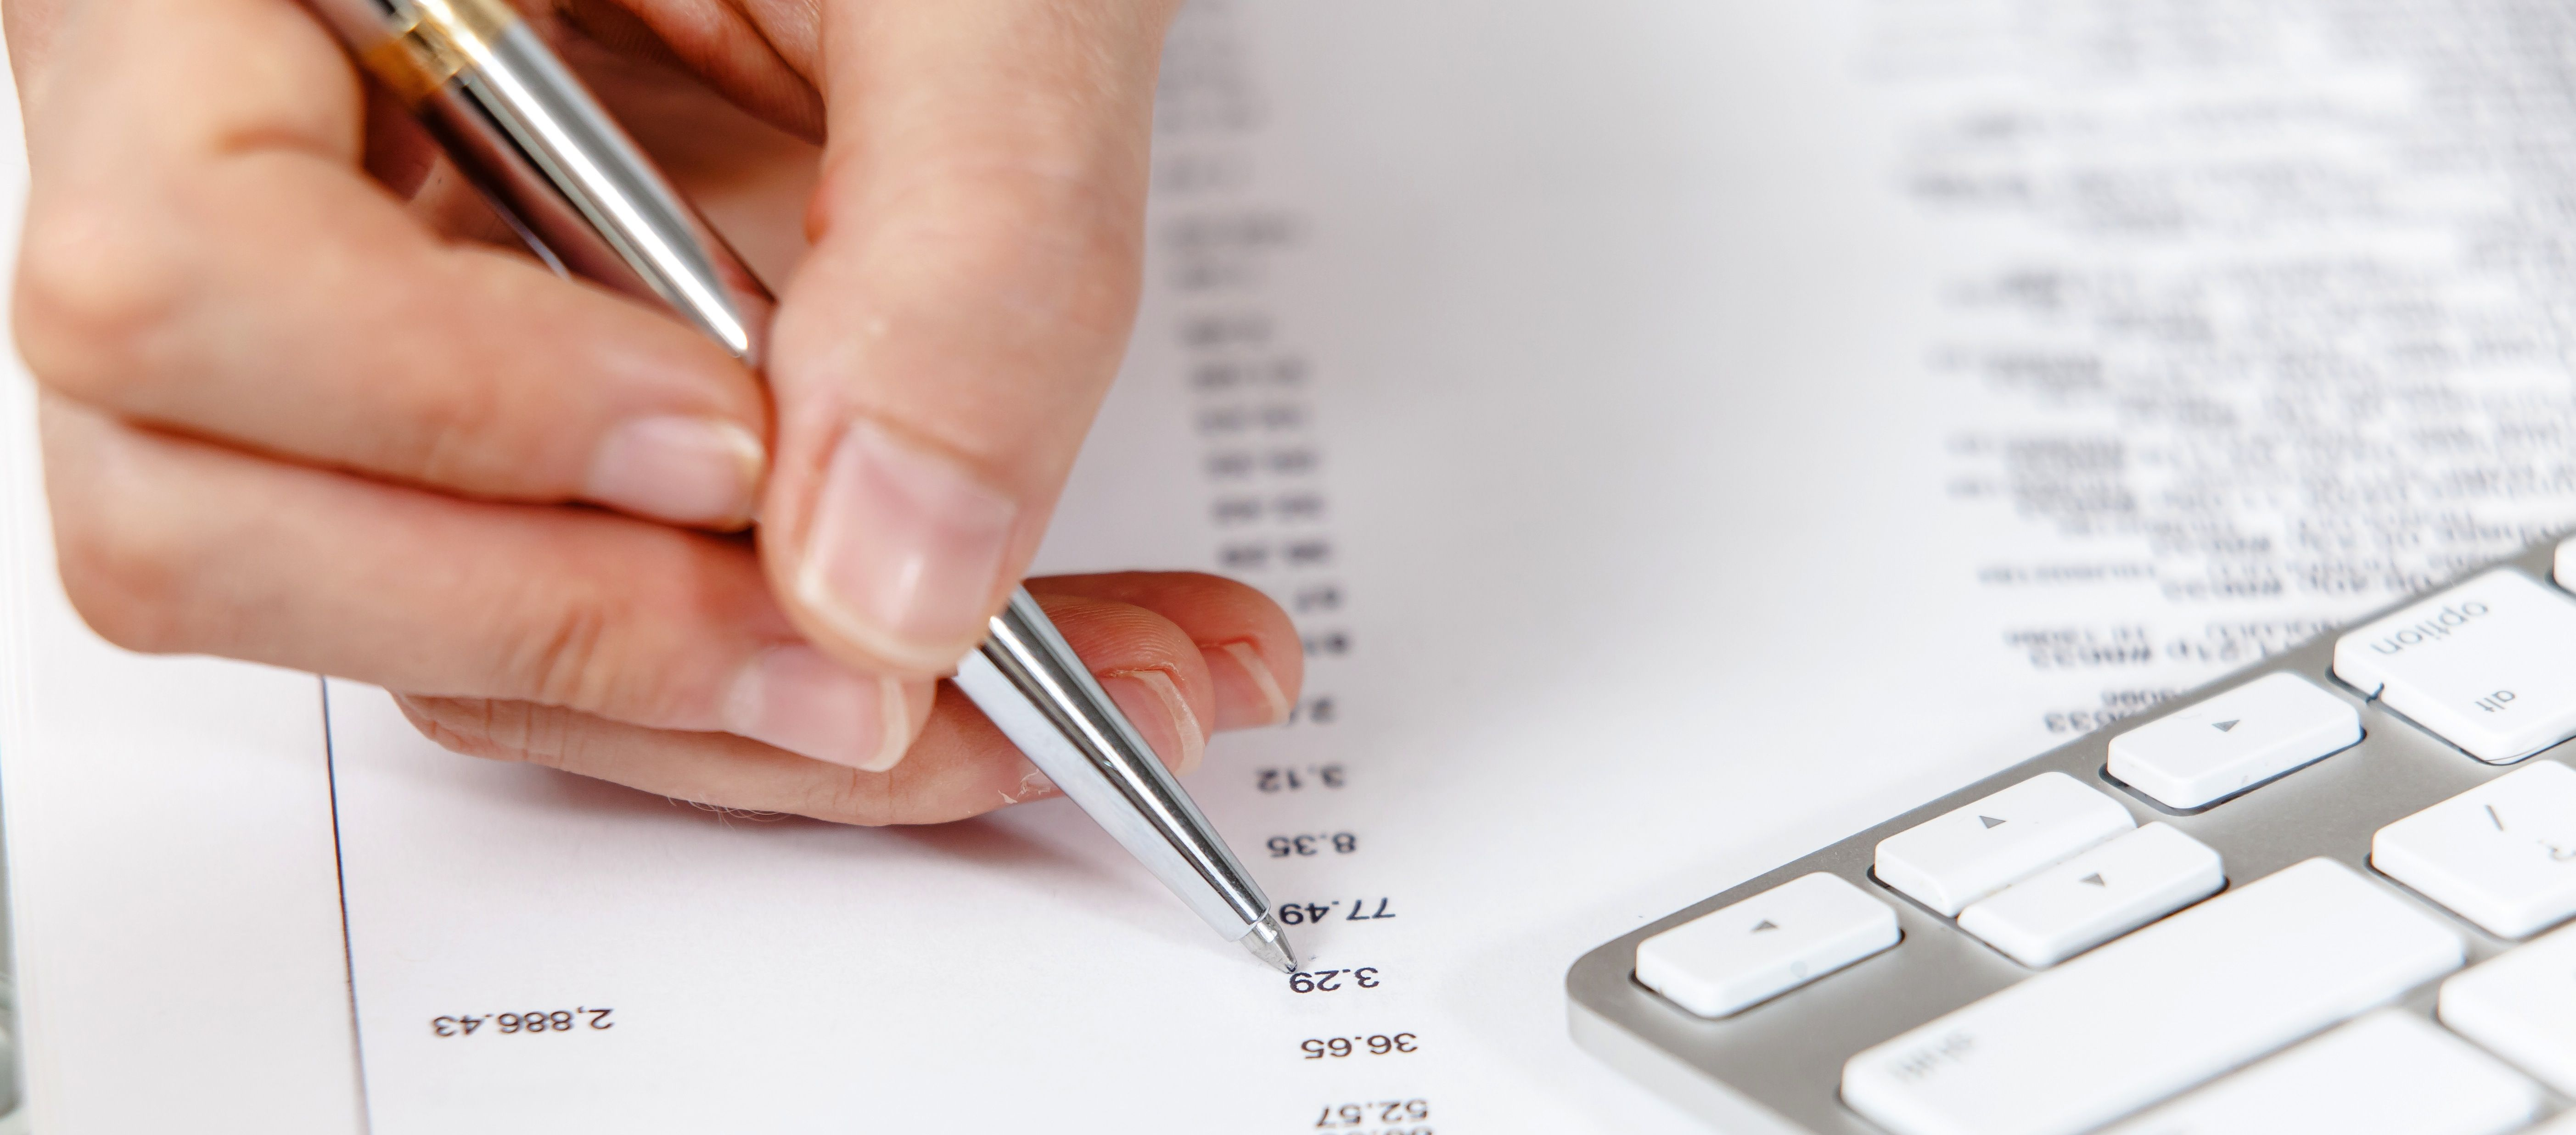 How To Make Sense Of Your Small Business Financial Statements